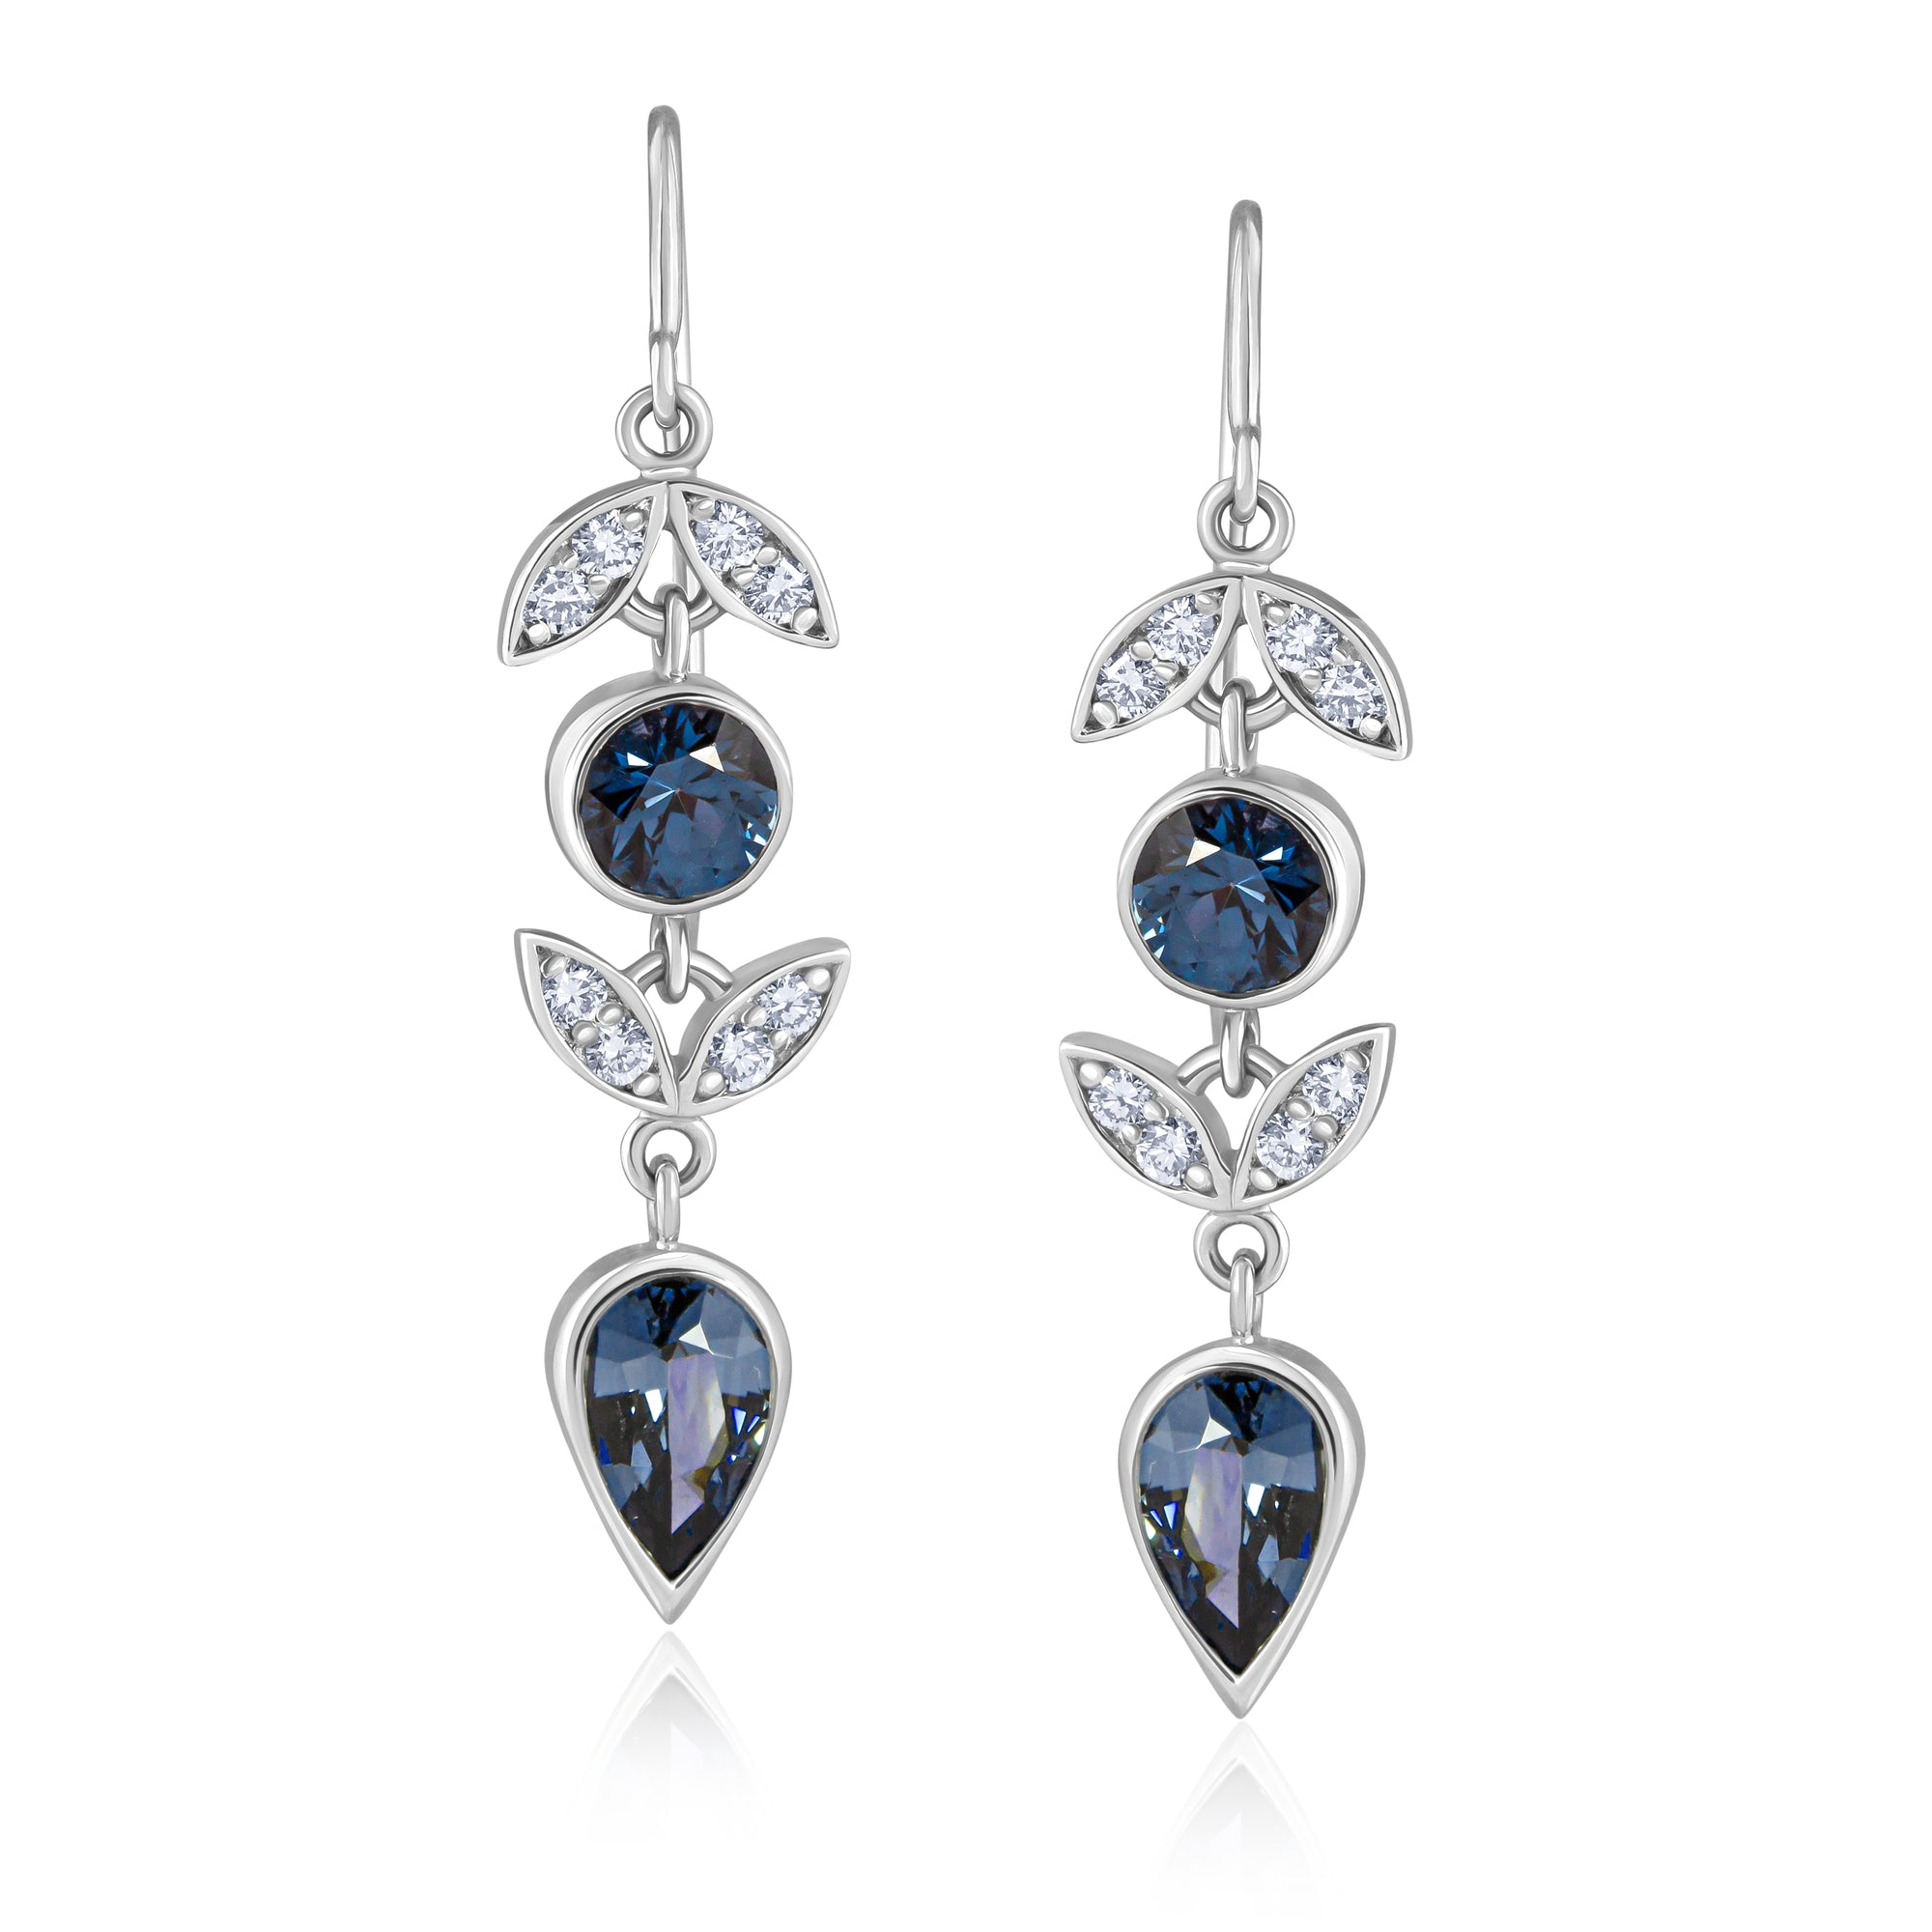 PLATINUM DIAMOND SPINEL LOTUS EARRINGS